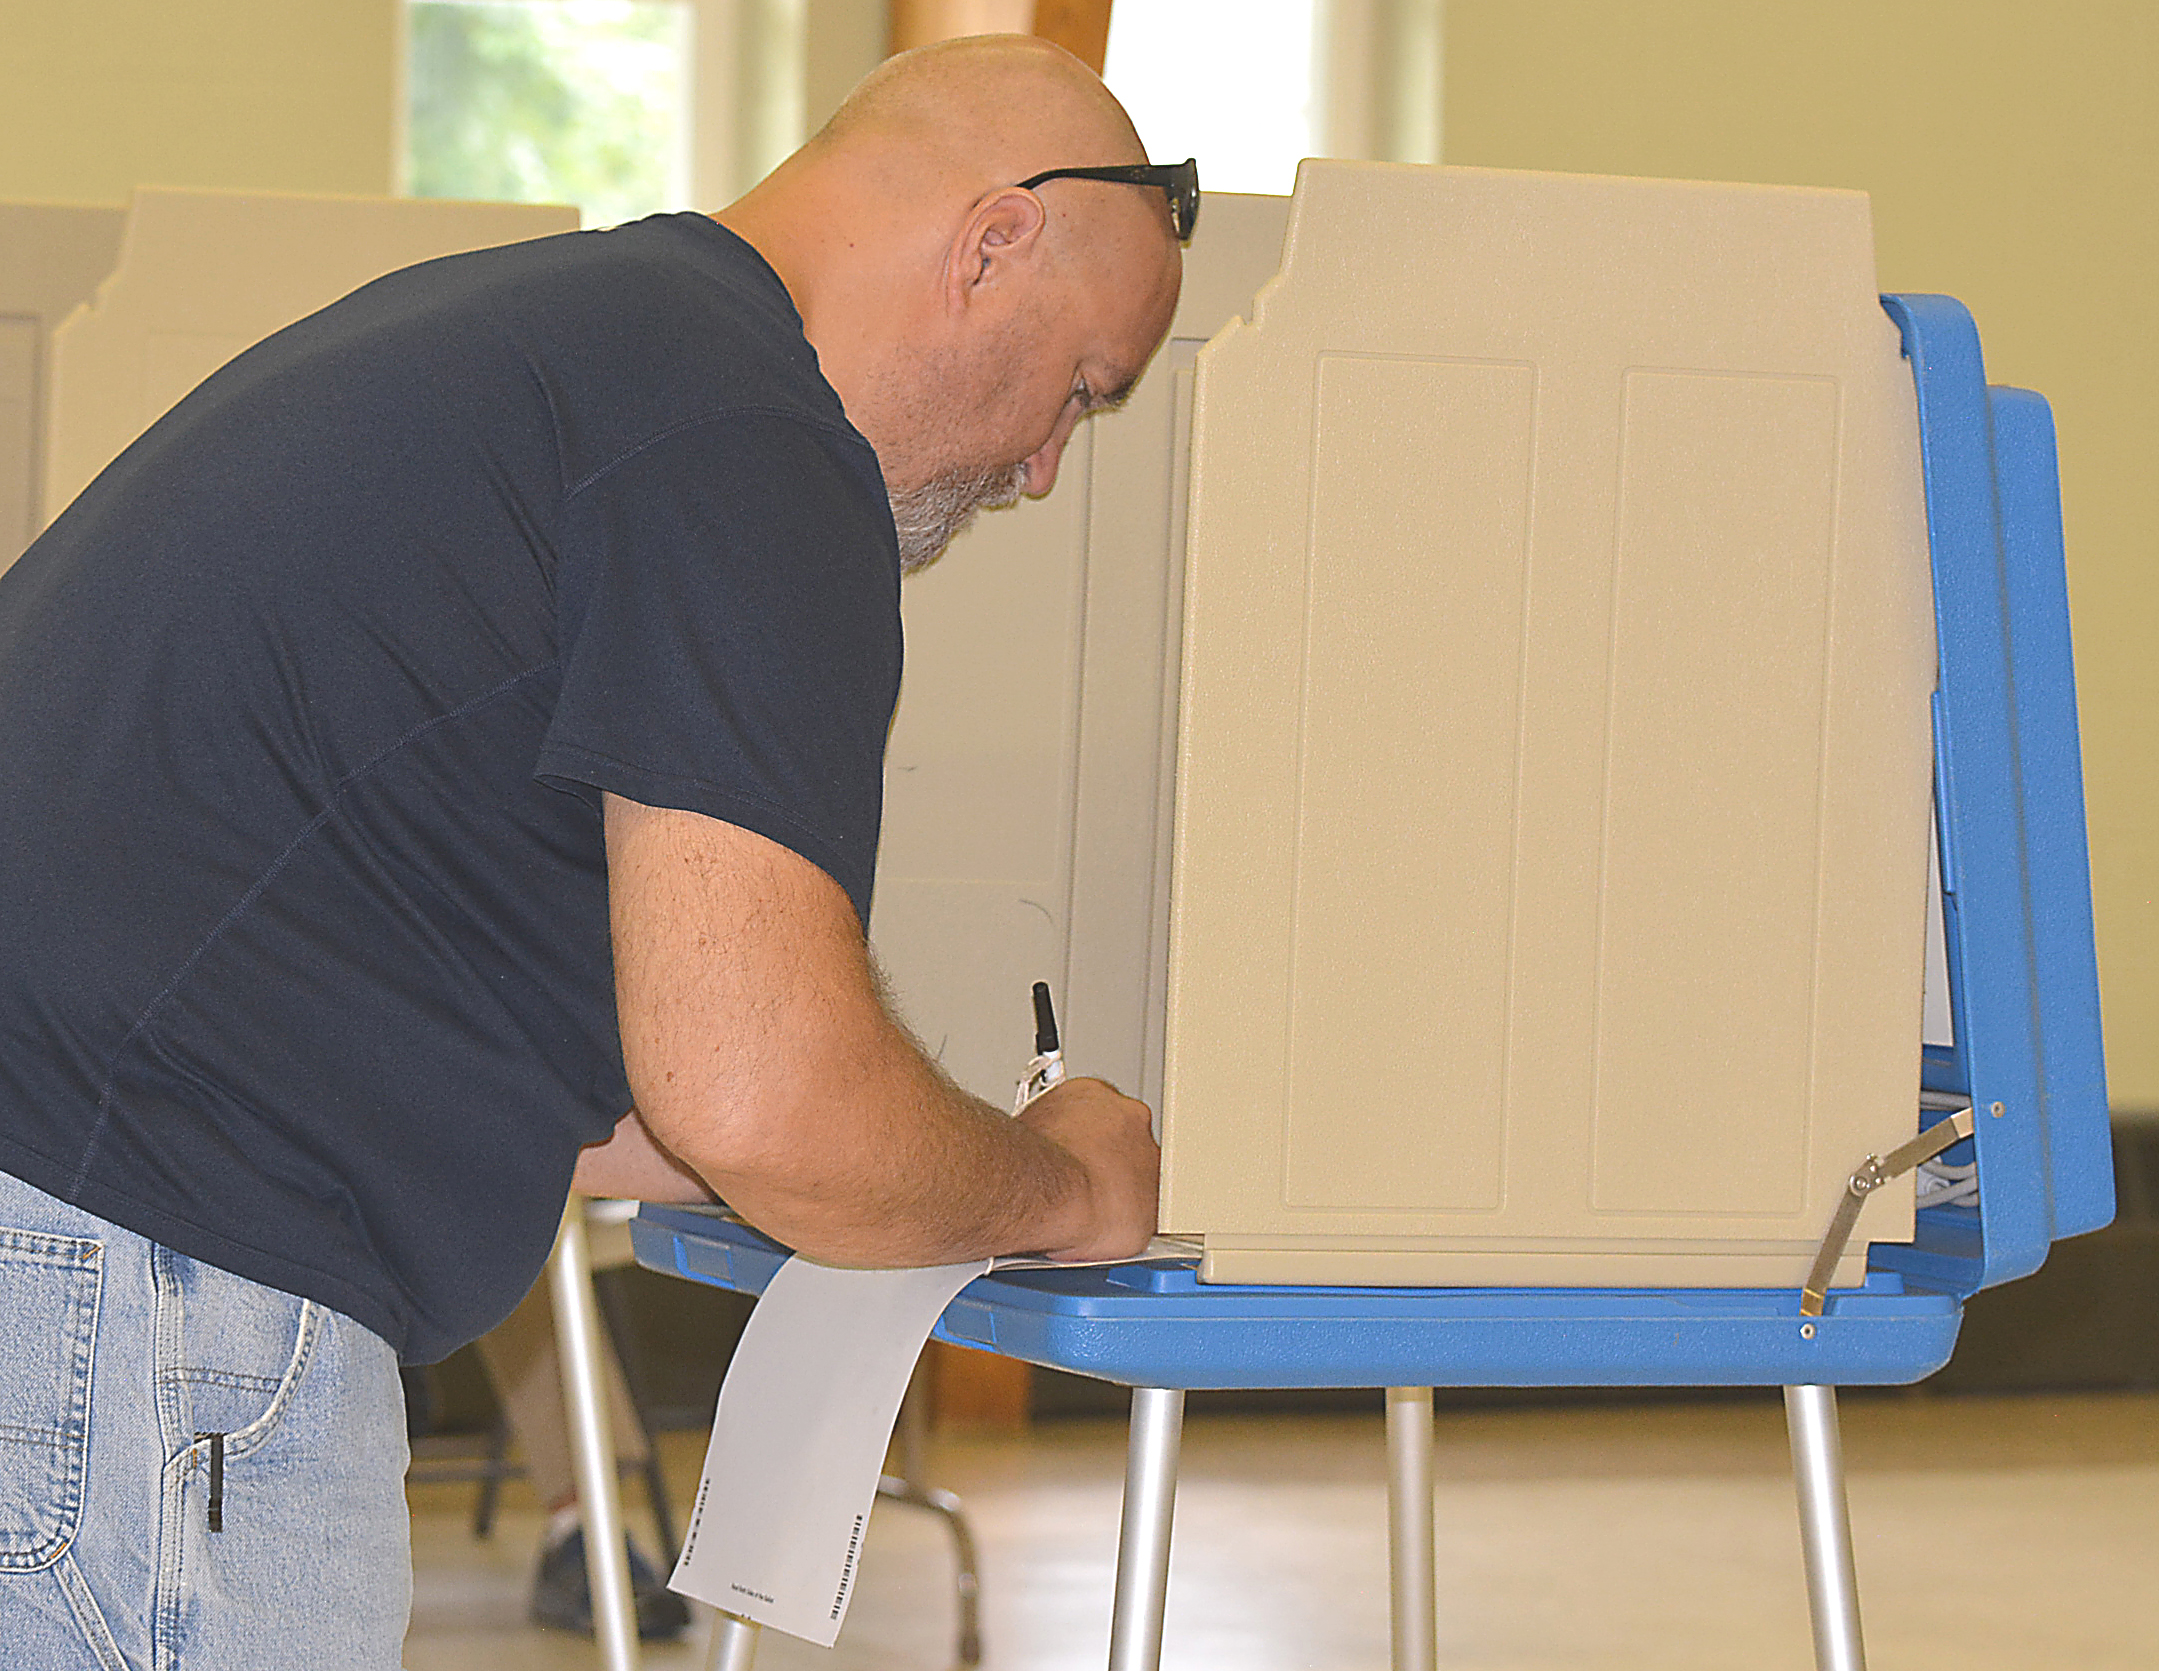 www.oxfordleader.com to learn which candidates won the right to appear on the November ballot and which local millage proposals passed or failed. Photo by C.J. Carnacchio.